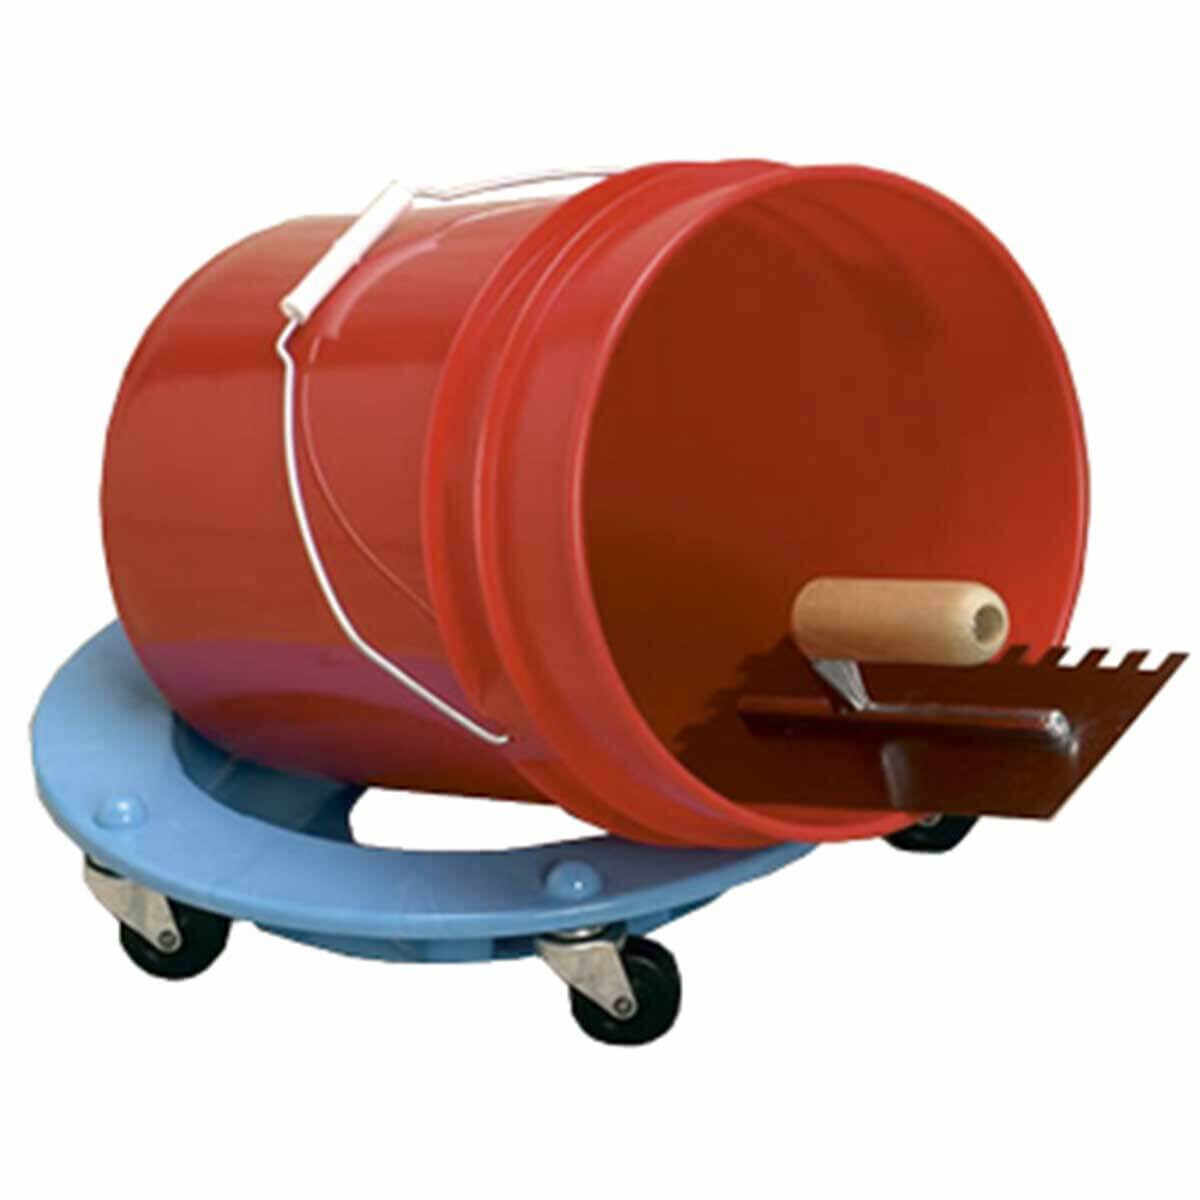 bucket dolly Fits all 5 and 3-1/2 gal buckets, will hold a bucket on a 45 degree angle, Sturdy and stable 300 lbs capacity, 5 casters, Bucket d